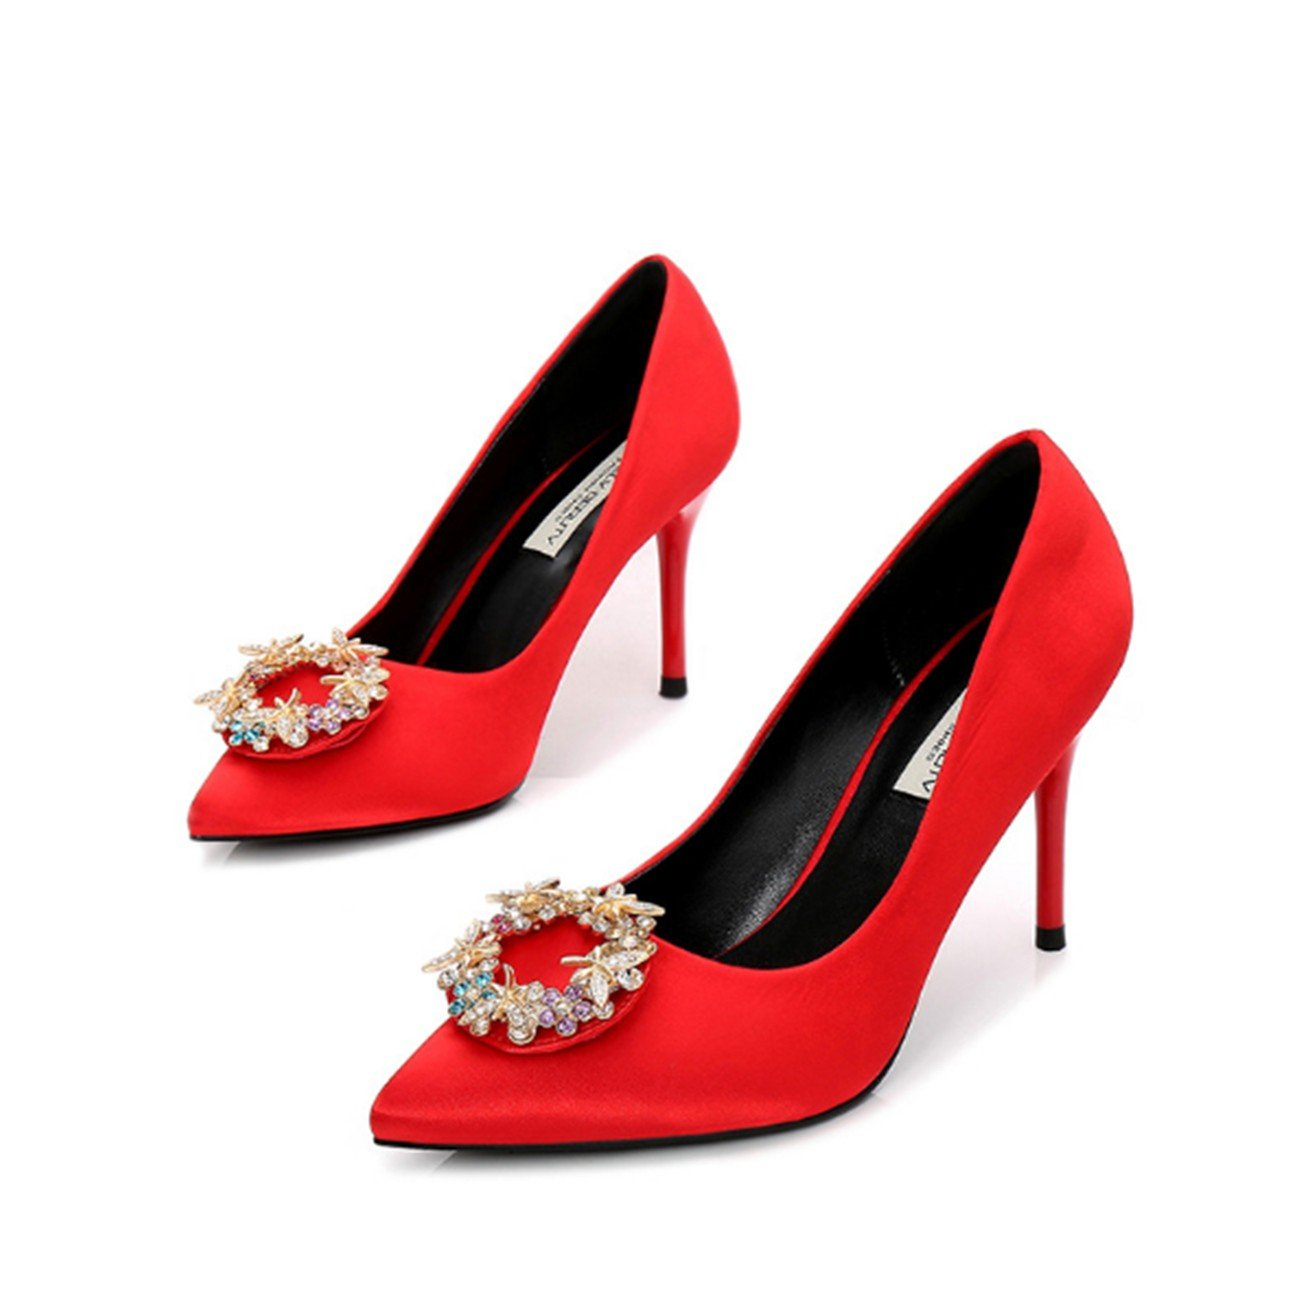 Ruanlei Shoes For Dress Wedding Party/Stiletto High Heel Pumps/Gradient Pointed Toe StilettoTip with fine glass tie, a red,40